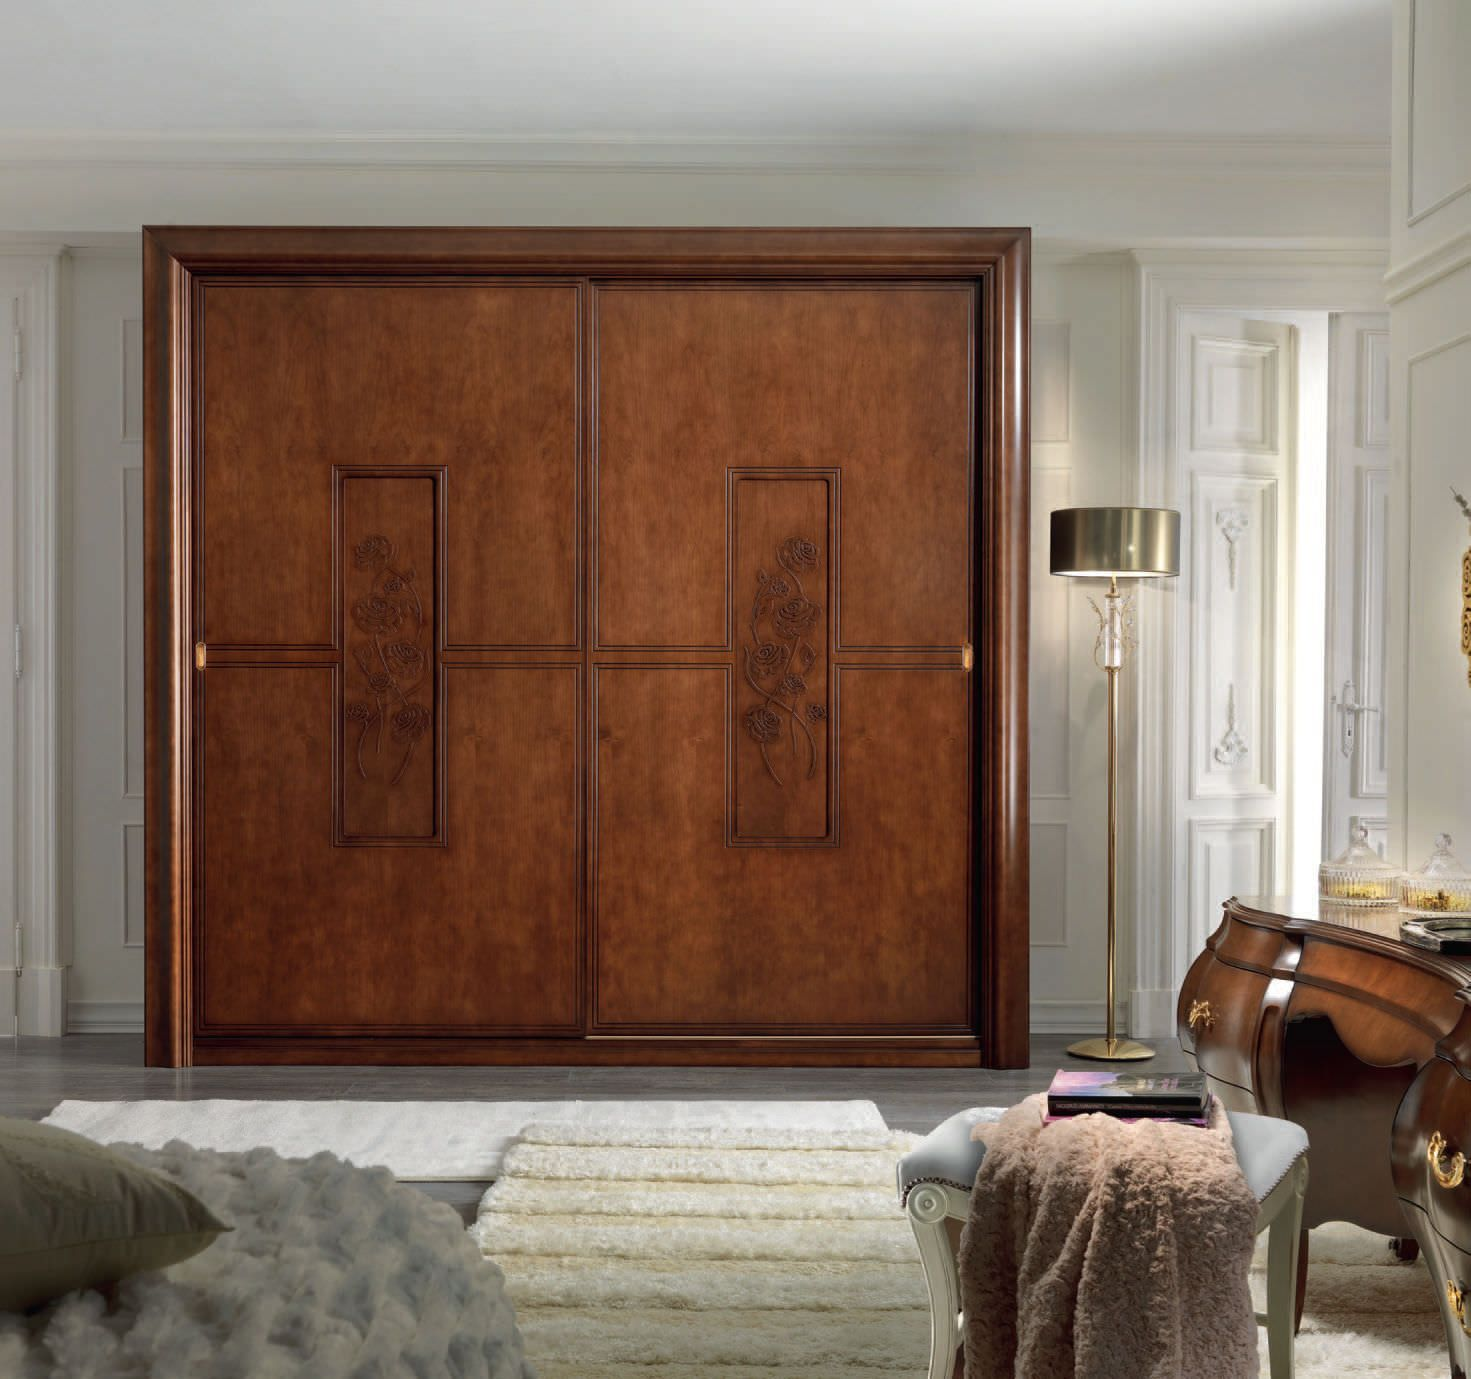 23 Stylish Closet Door Ideas That Add Style To Your Bedroom ThefischerHouse